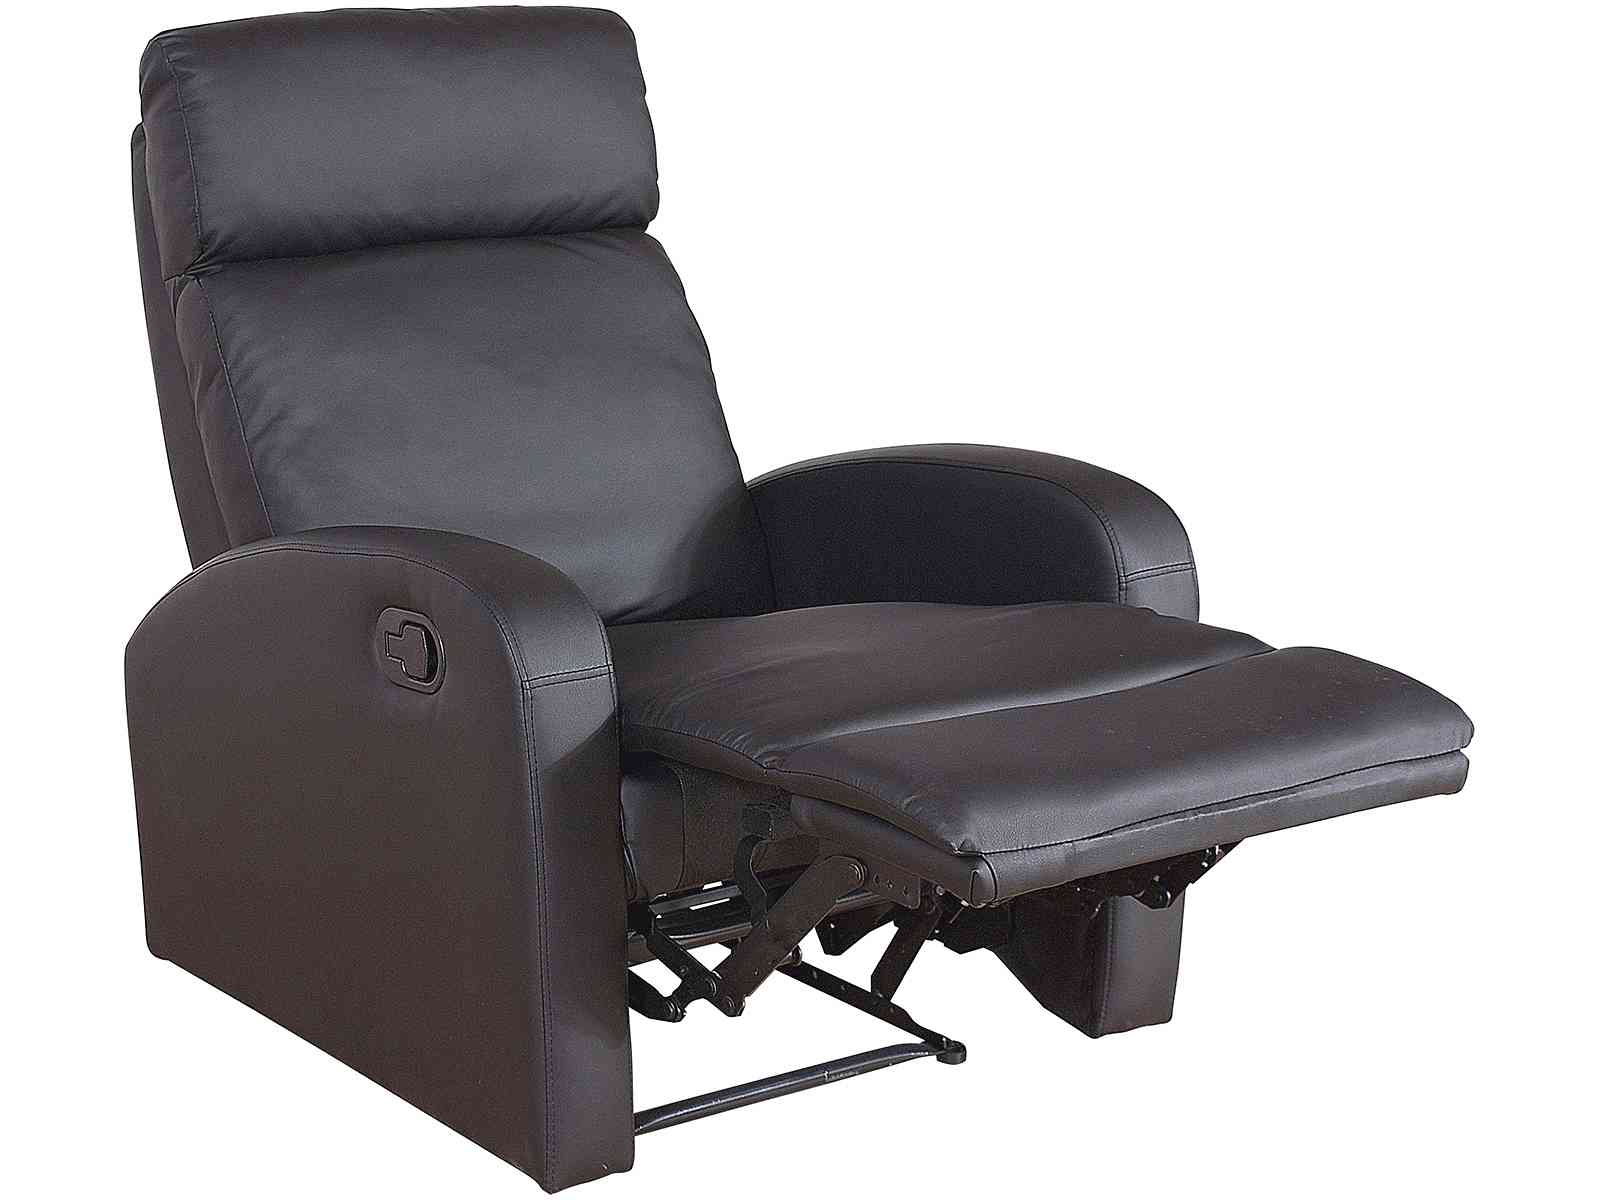 gfw the furniture warehouse nevada recliner chair